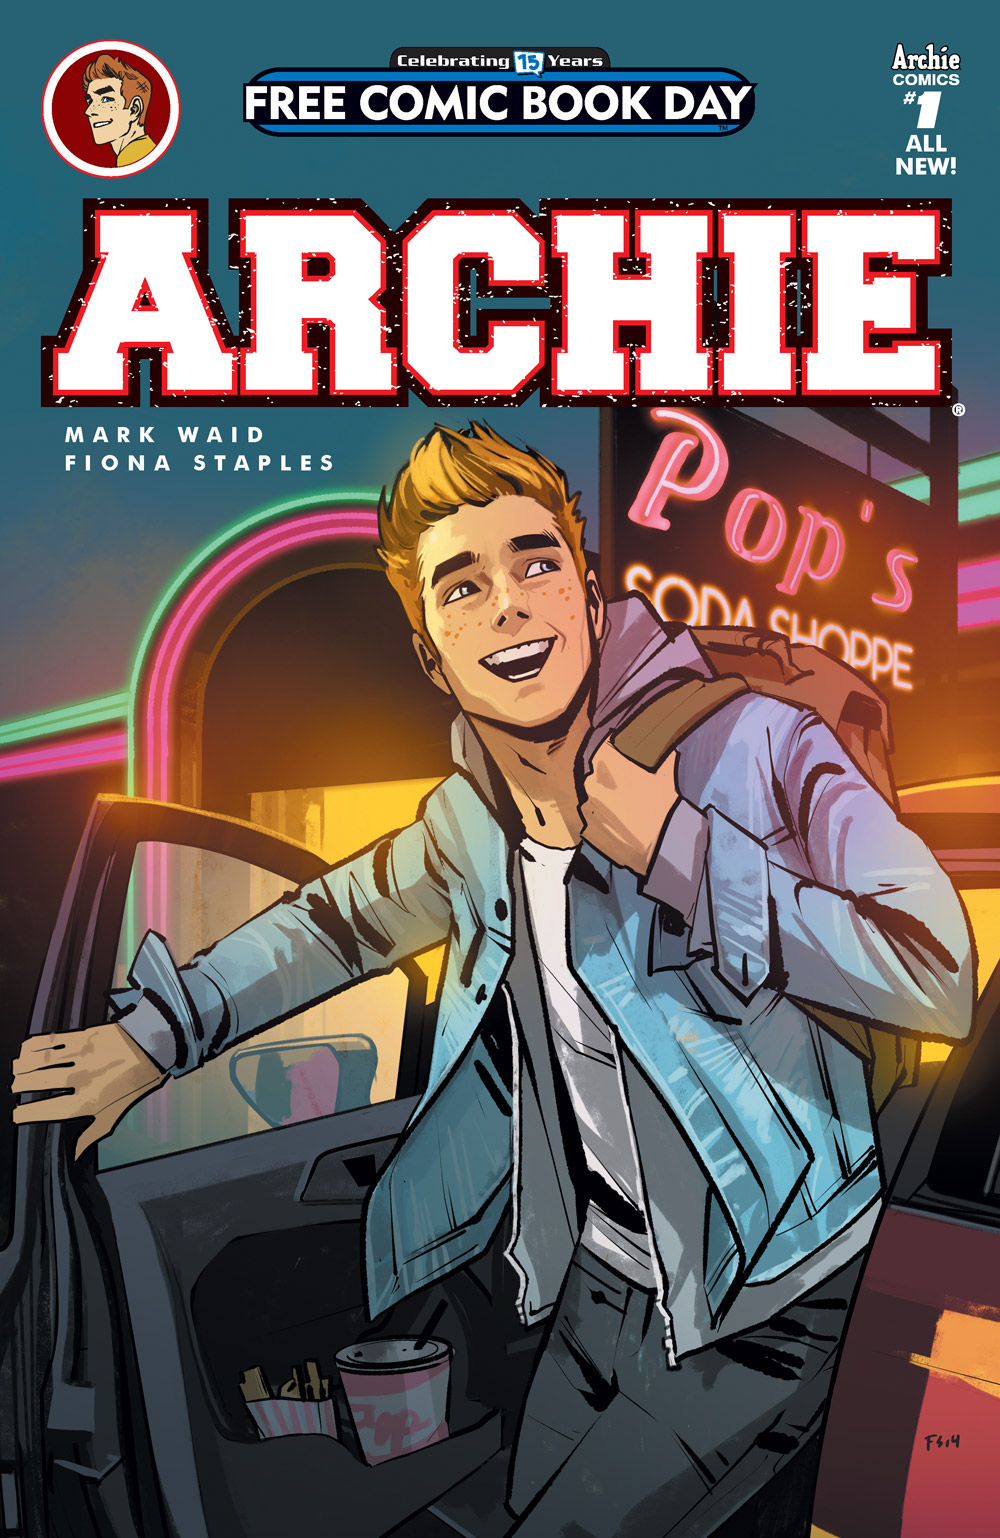 archie comics celebrates free comic book day 2016 with creator